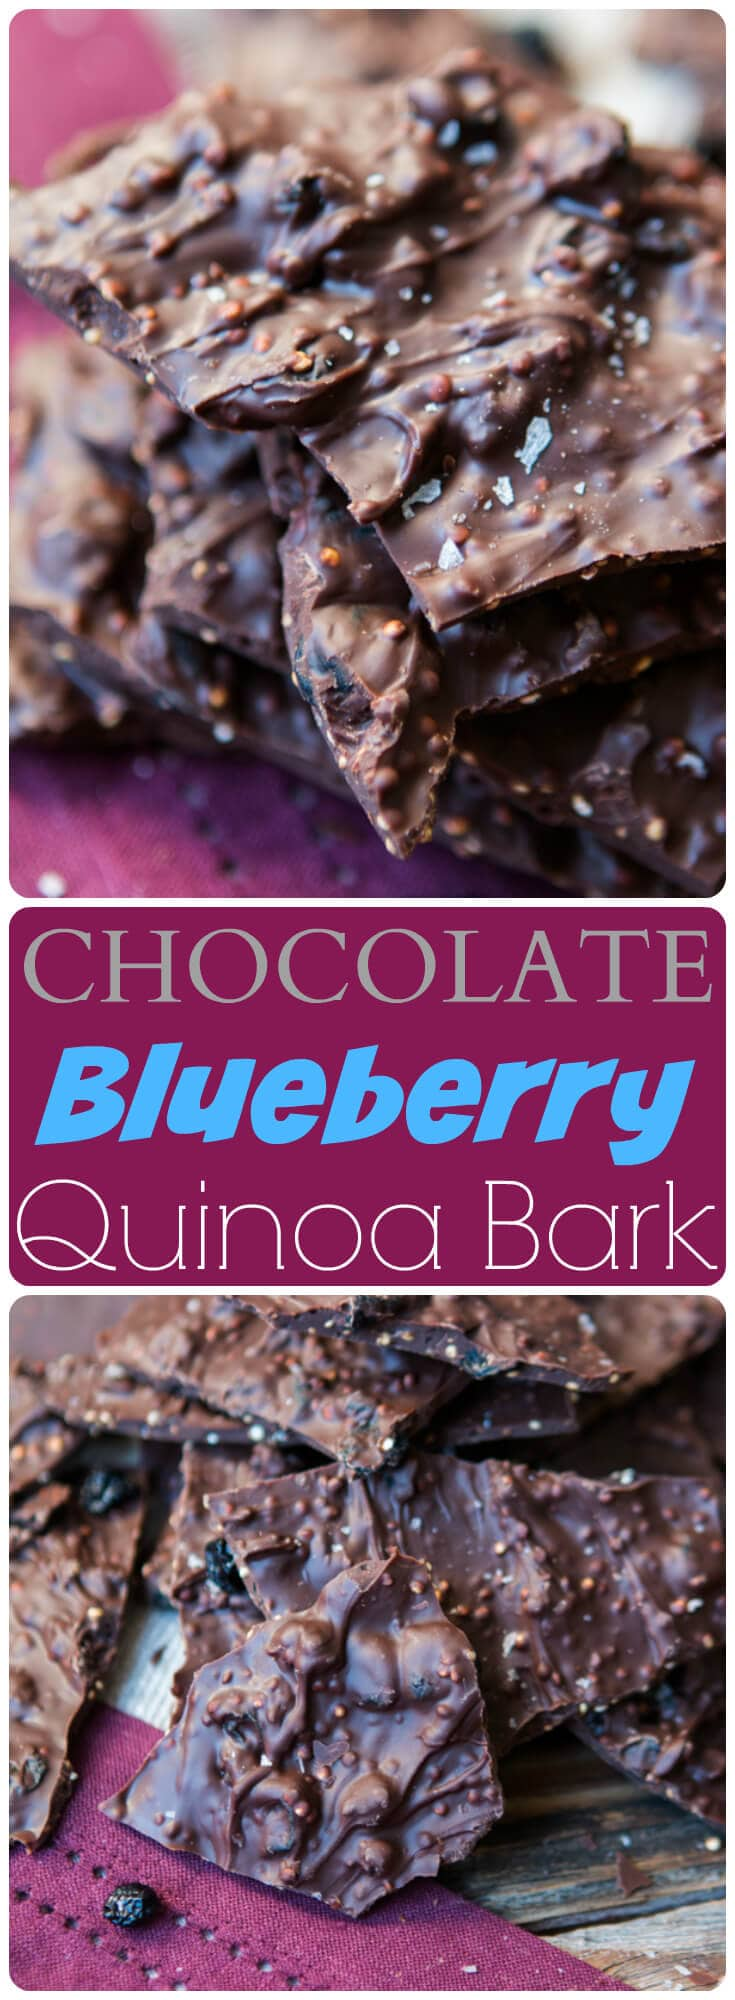 Have you been dying over all of those dark chocolate snacks popping up in stores everywhere? Our new obsession this year is our chocolate blueberry quinoa bark. ohsweetbasil.com